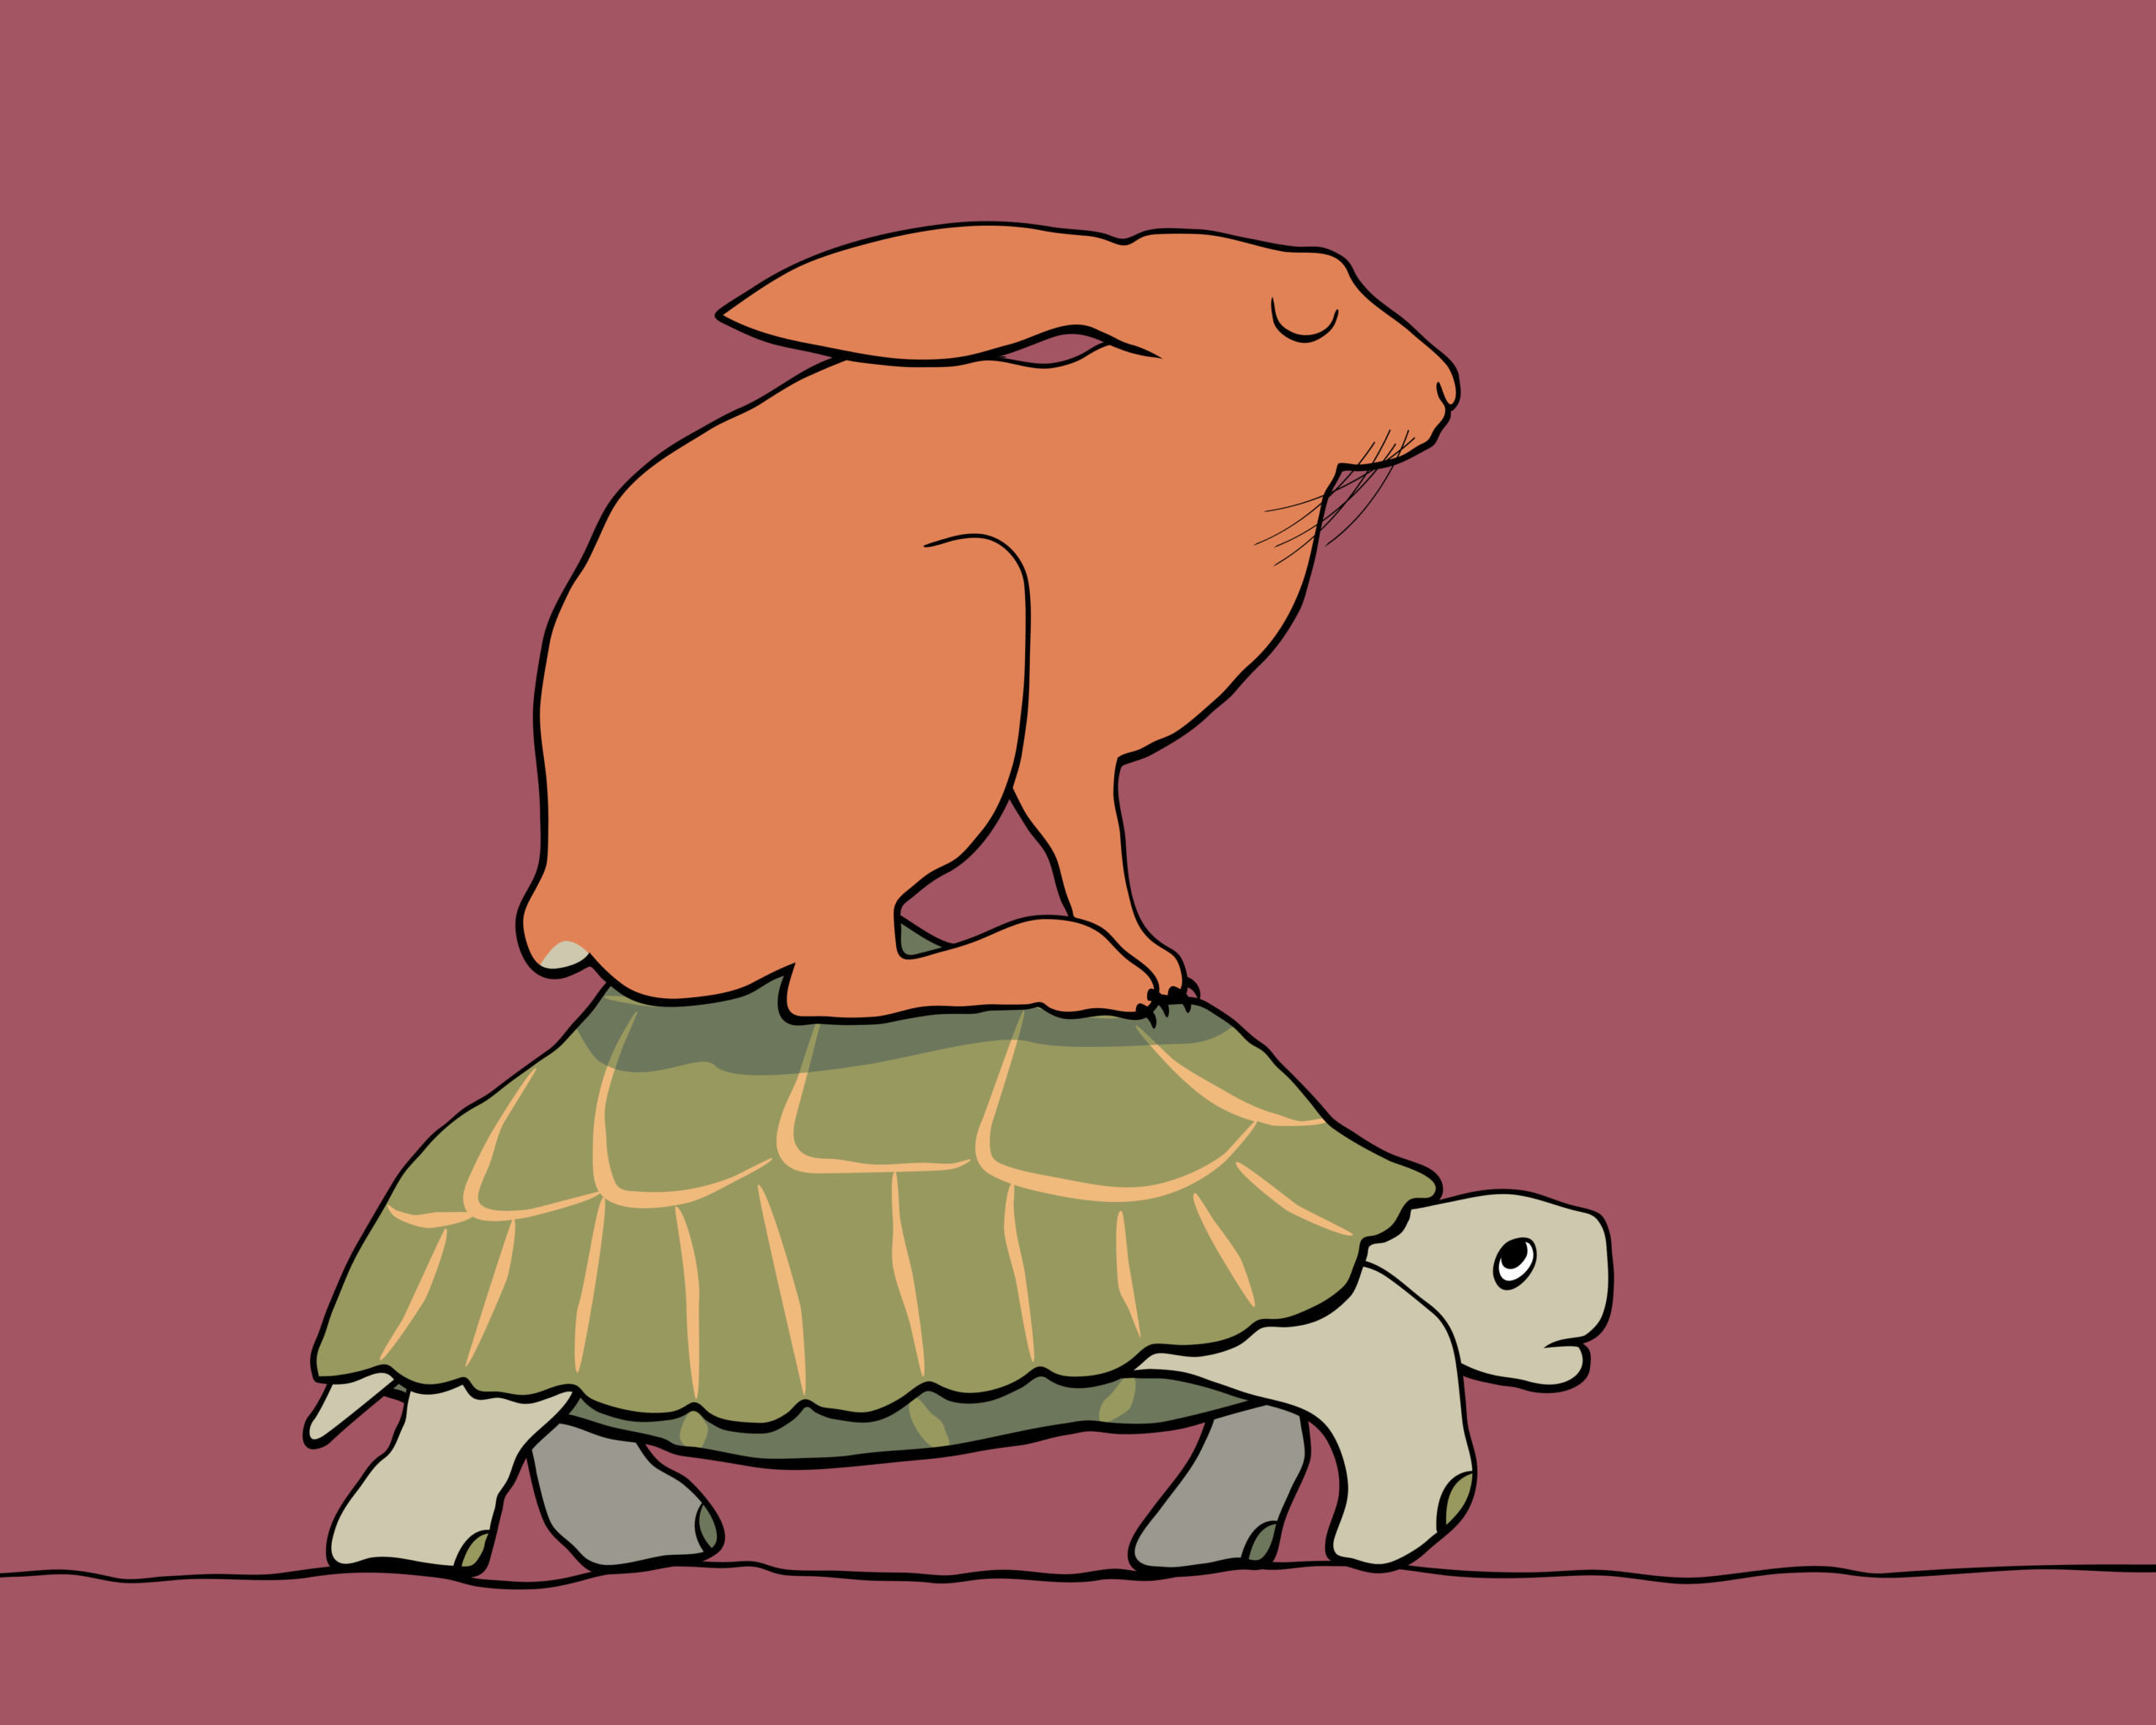 Technology and Care: How a Tortoise Became a Hare